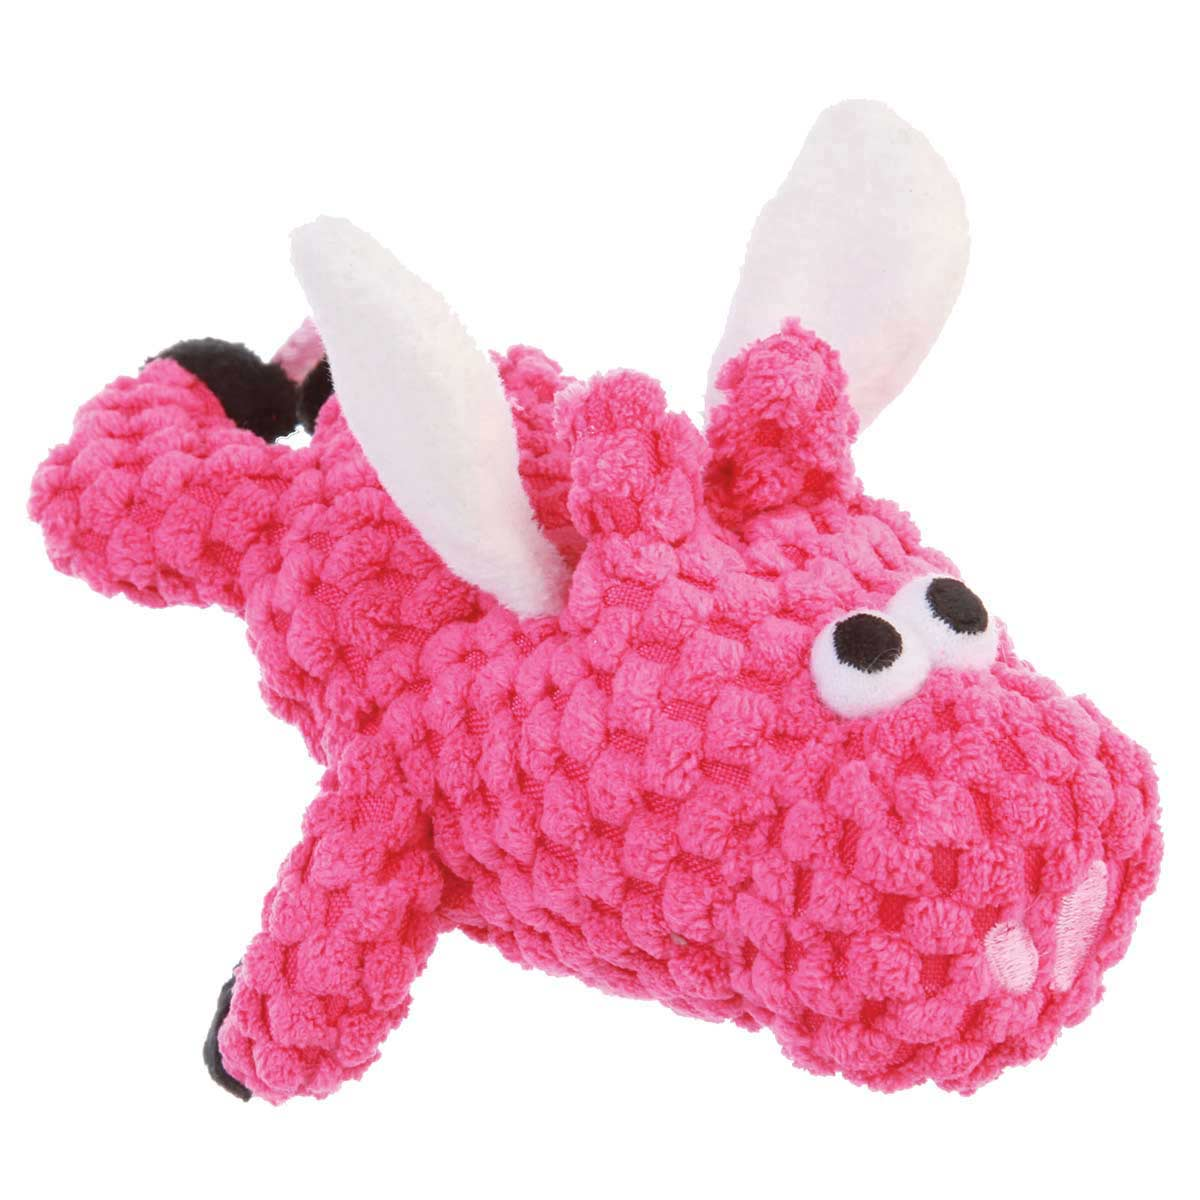 goDog Just For Me Checkers Flying Pig Pink With Chew Guard for dogs